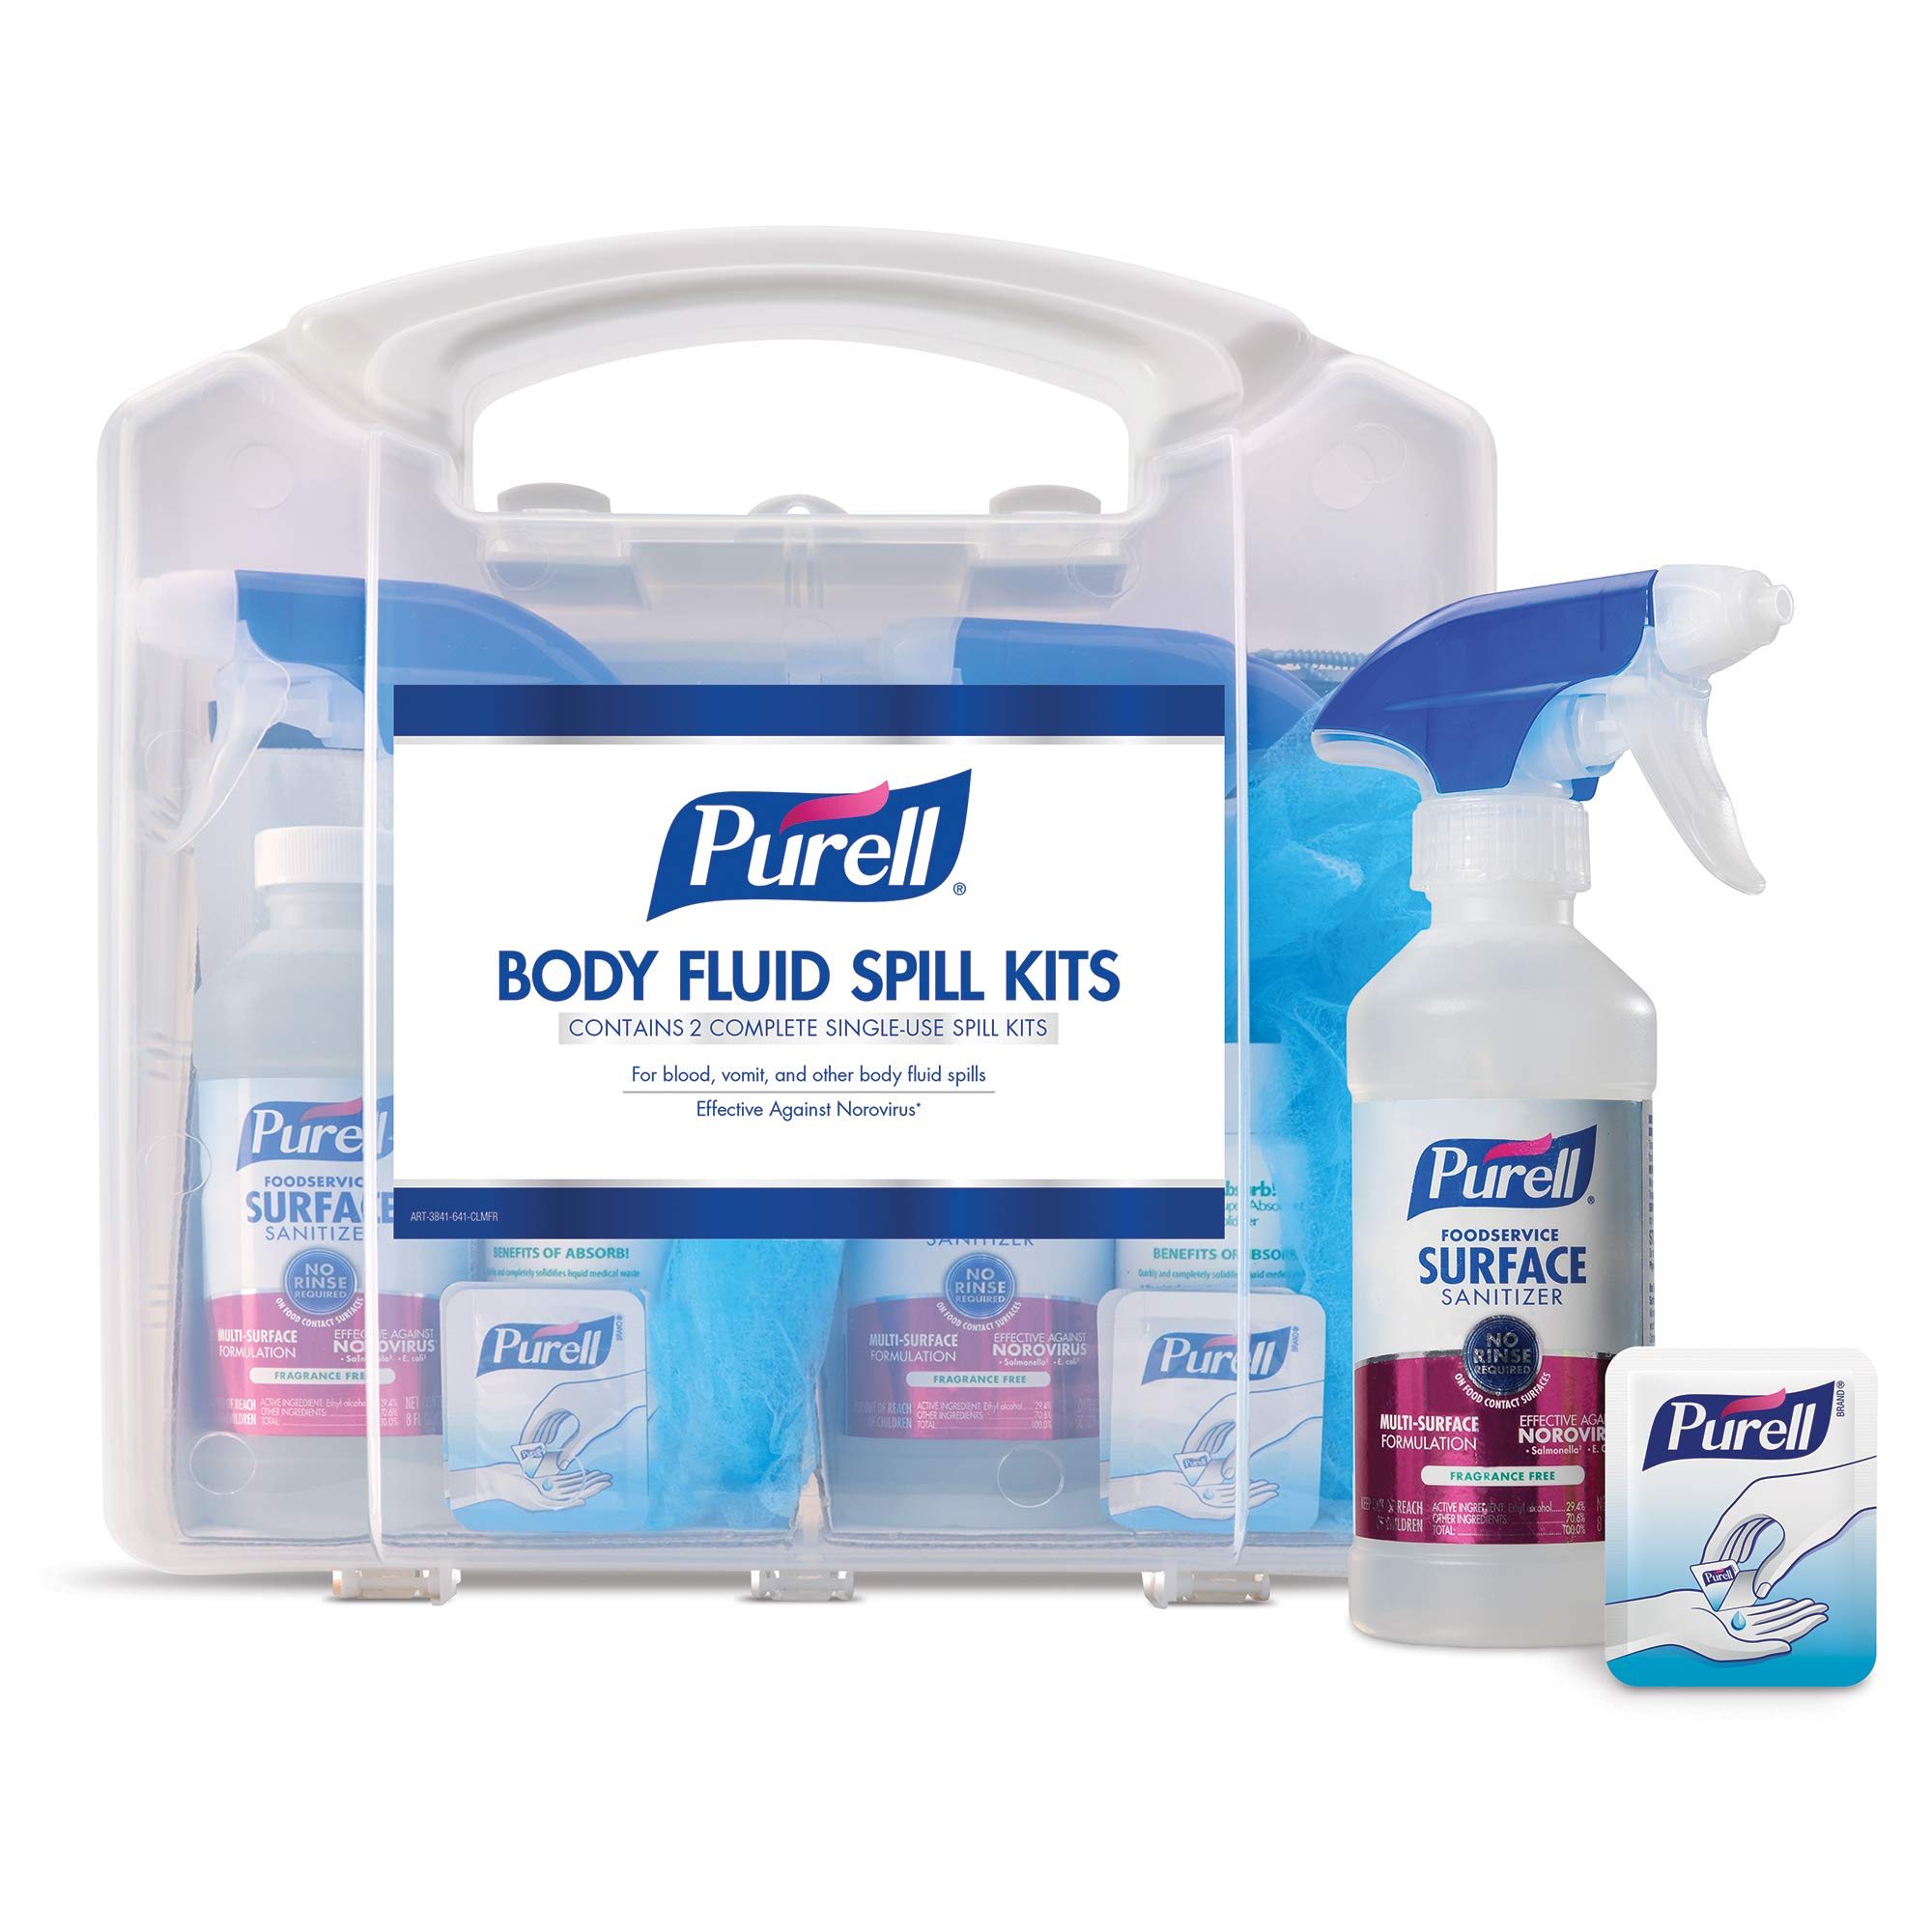 PURELL Body Fluid Spill Kit in Clam Shell Carrier, 2 Spill Kit Uses per Clamshell - 3841-08-CLMS